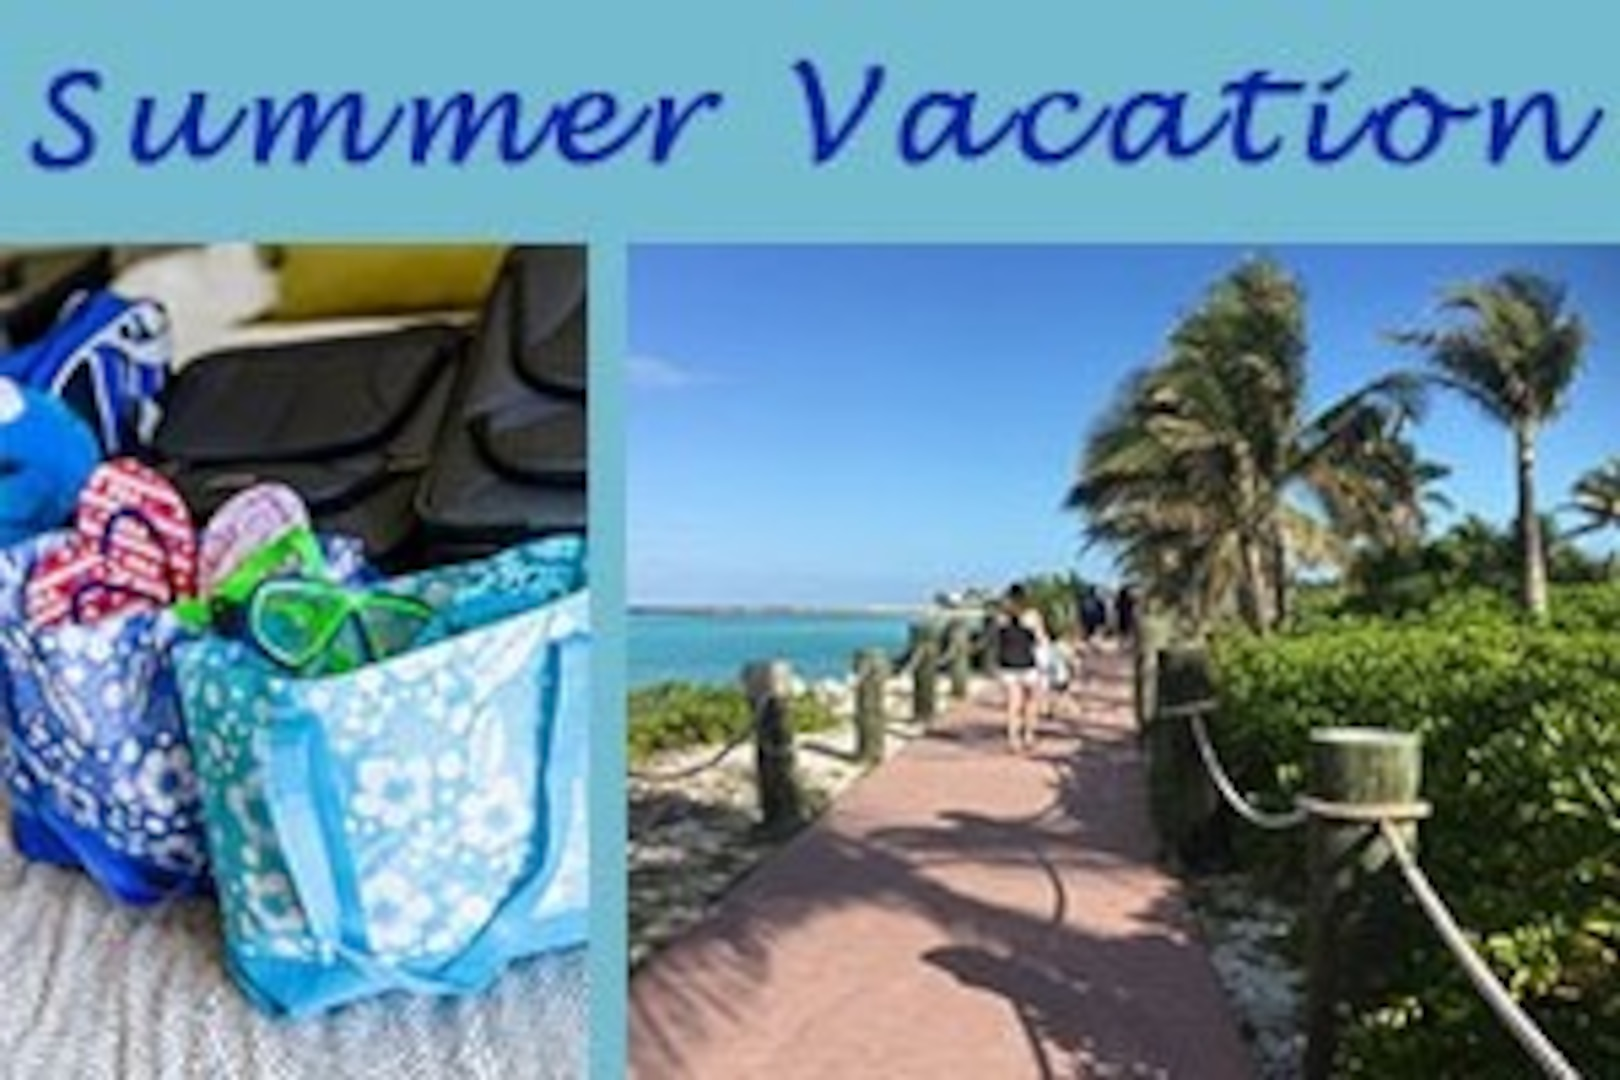 Summer is here and you know what that means: vacation. Here is all the information you need from safety tips and vacation reminders to discount options for your summer adventures.